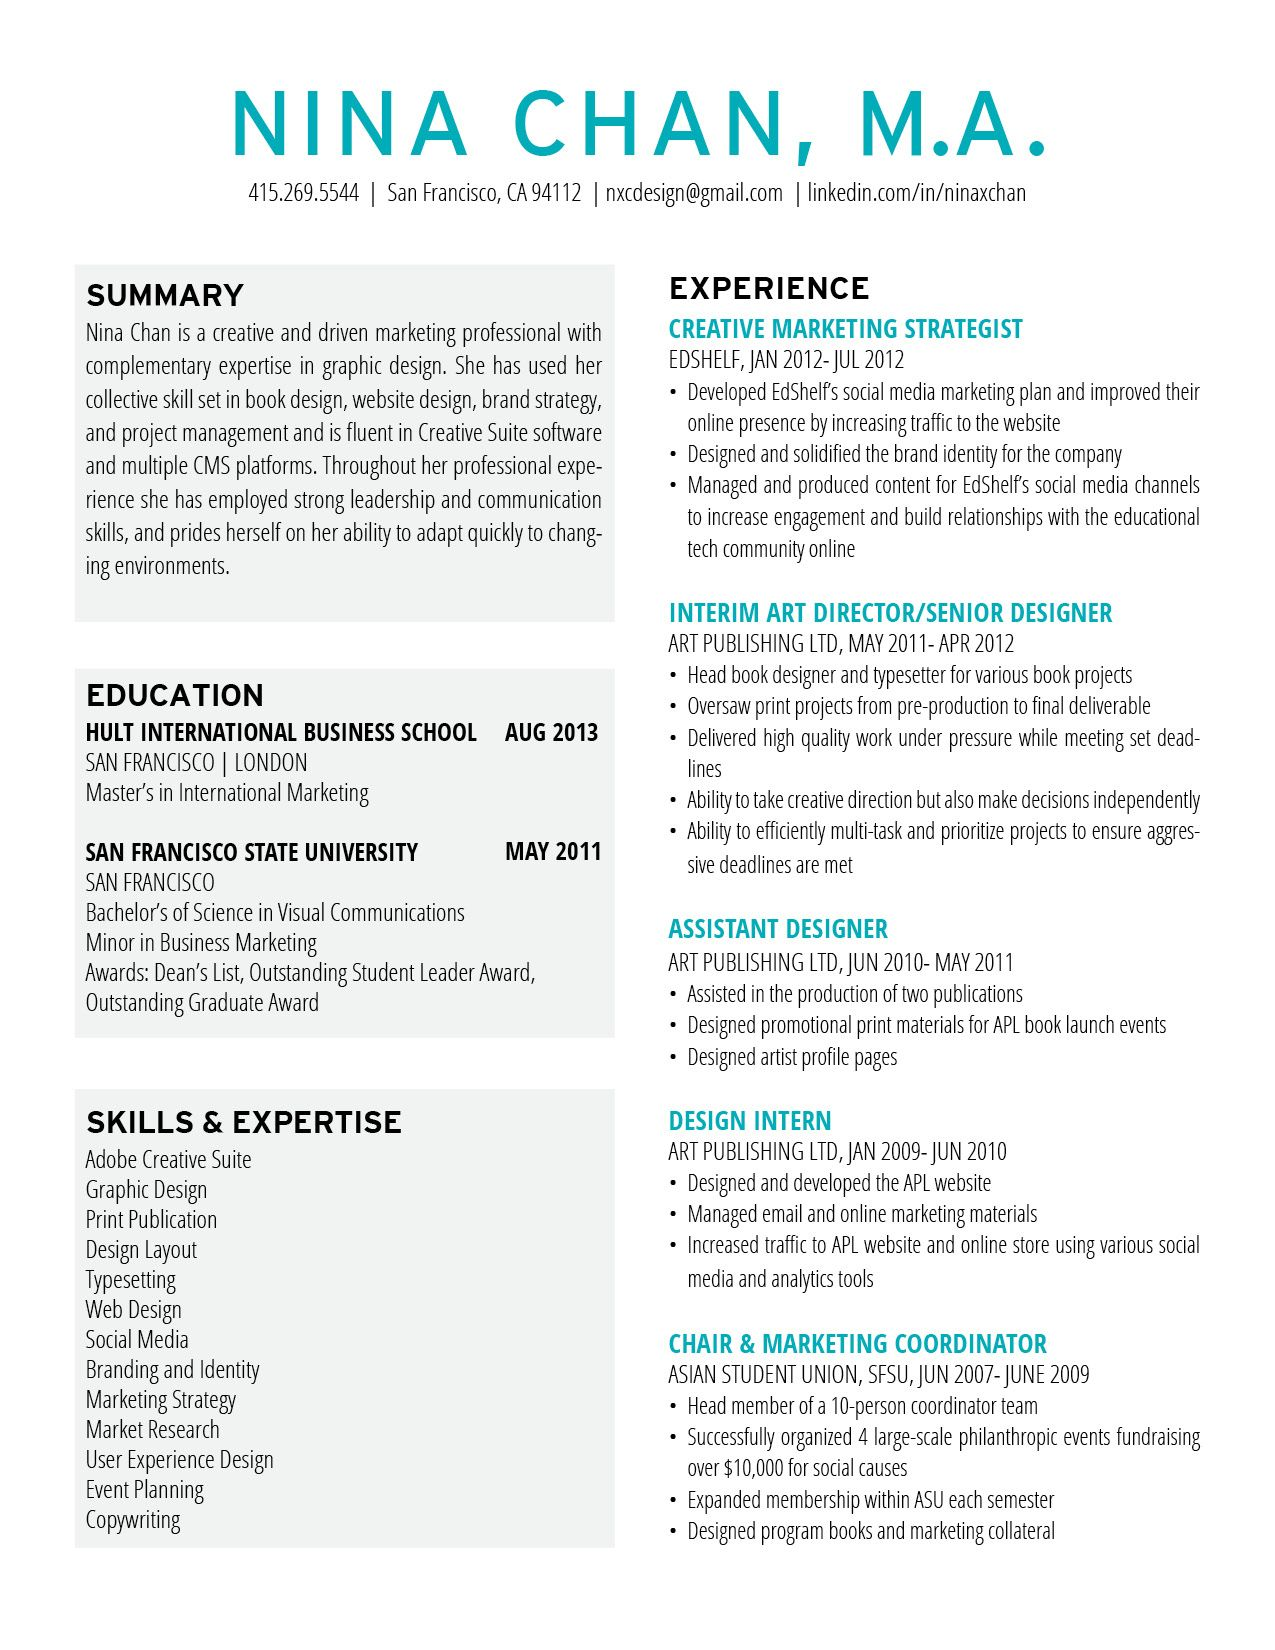 ninachan resume design  marketing  resume  resumedesign  layout  indesign  designer  ninachan